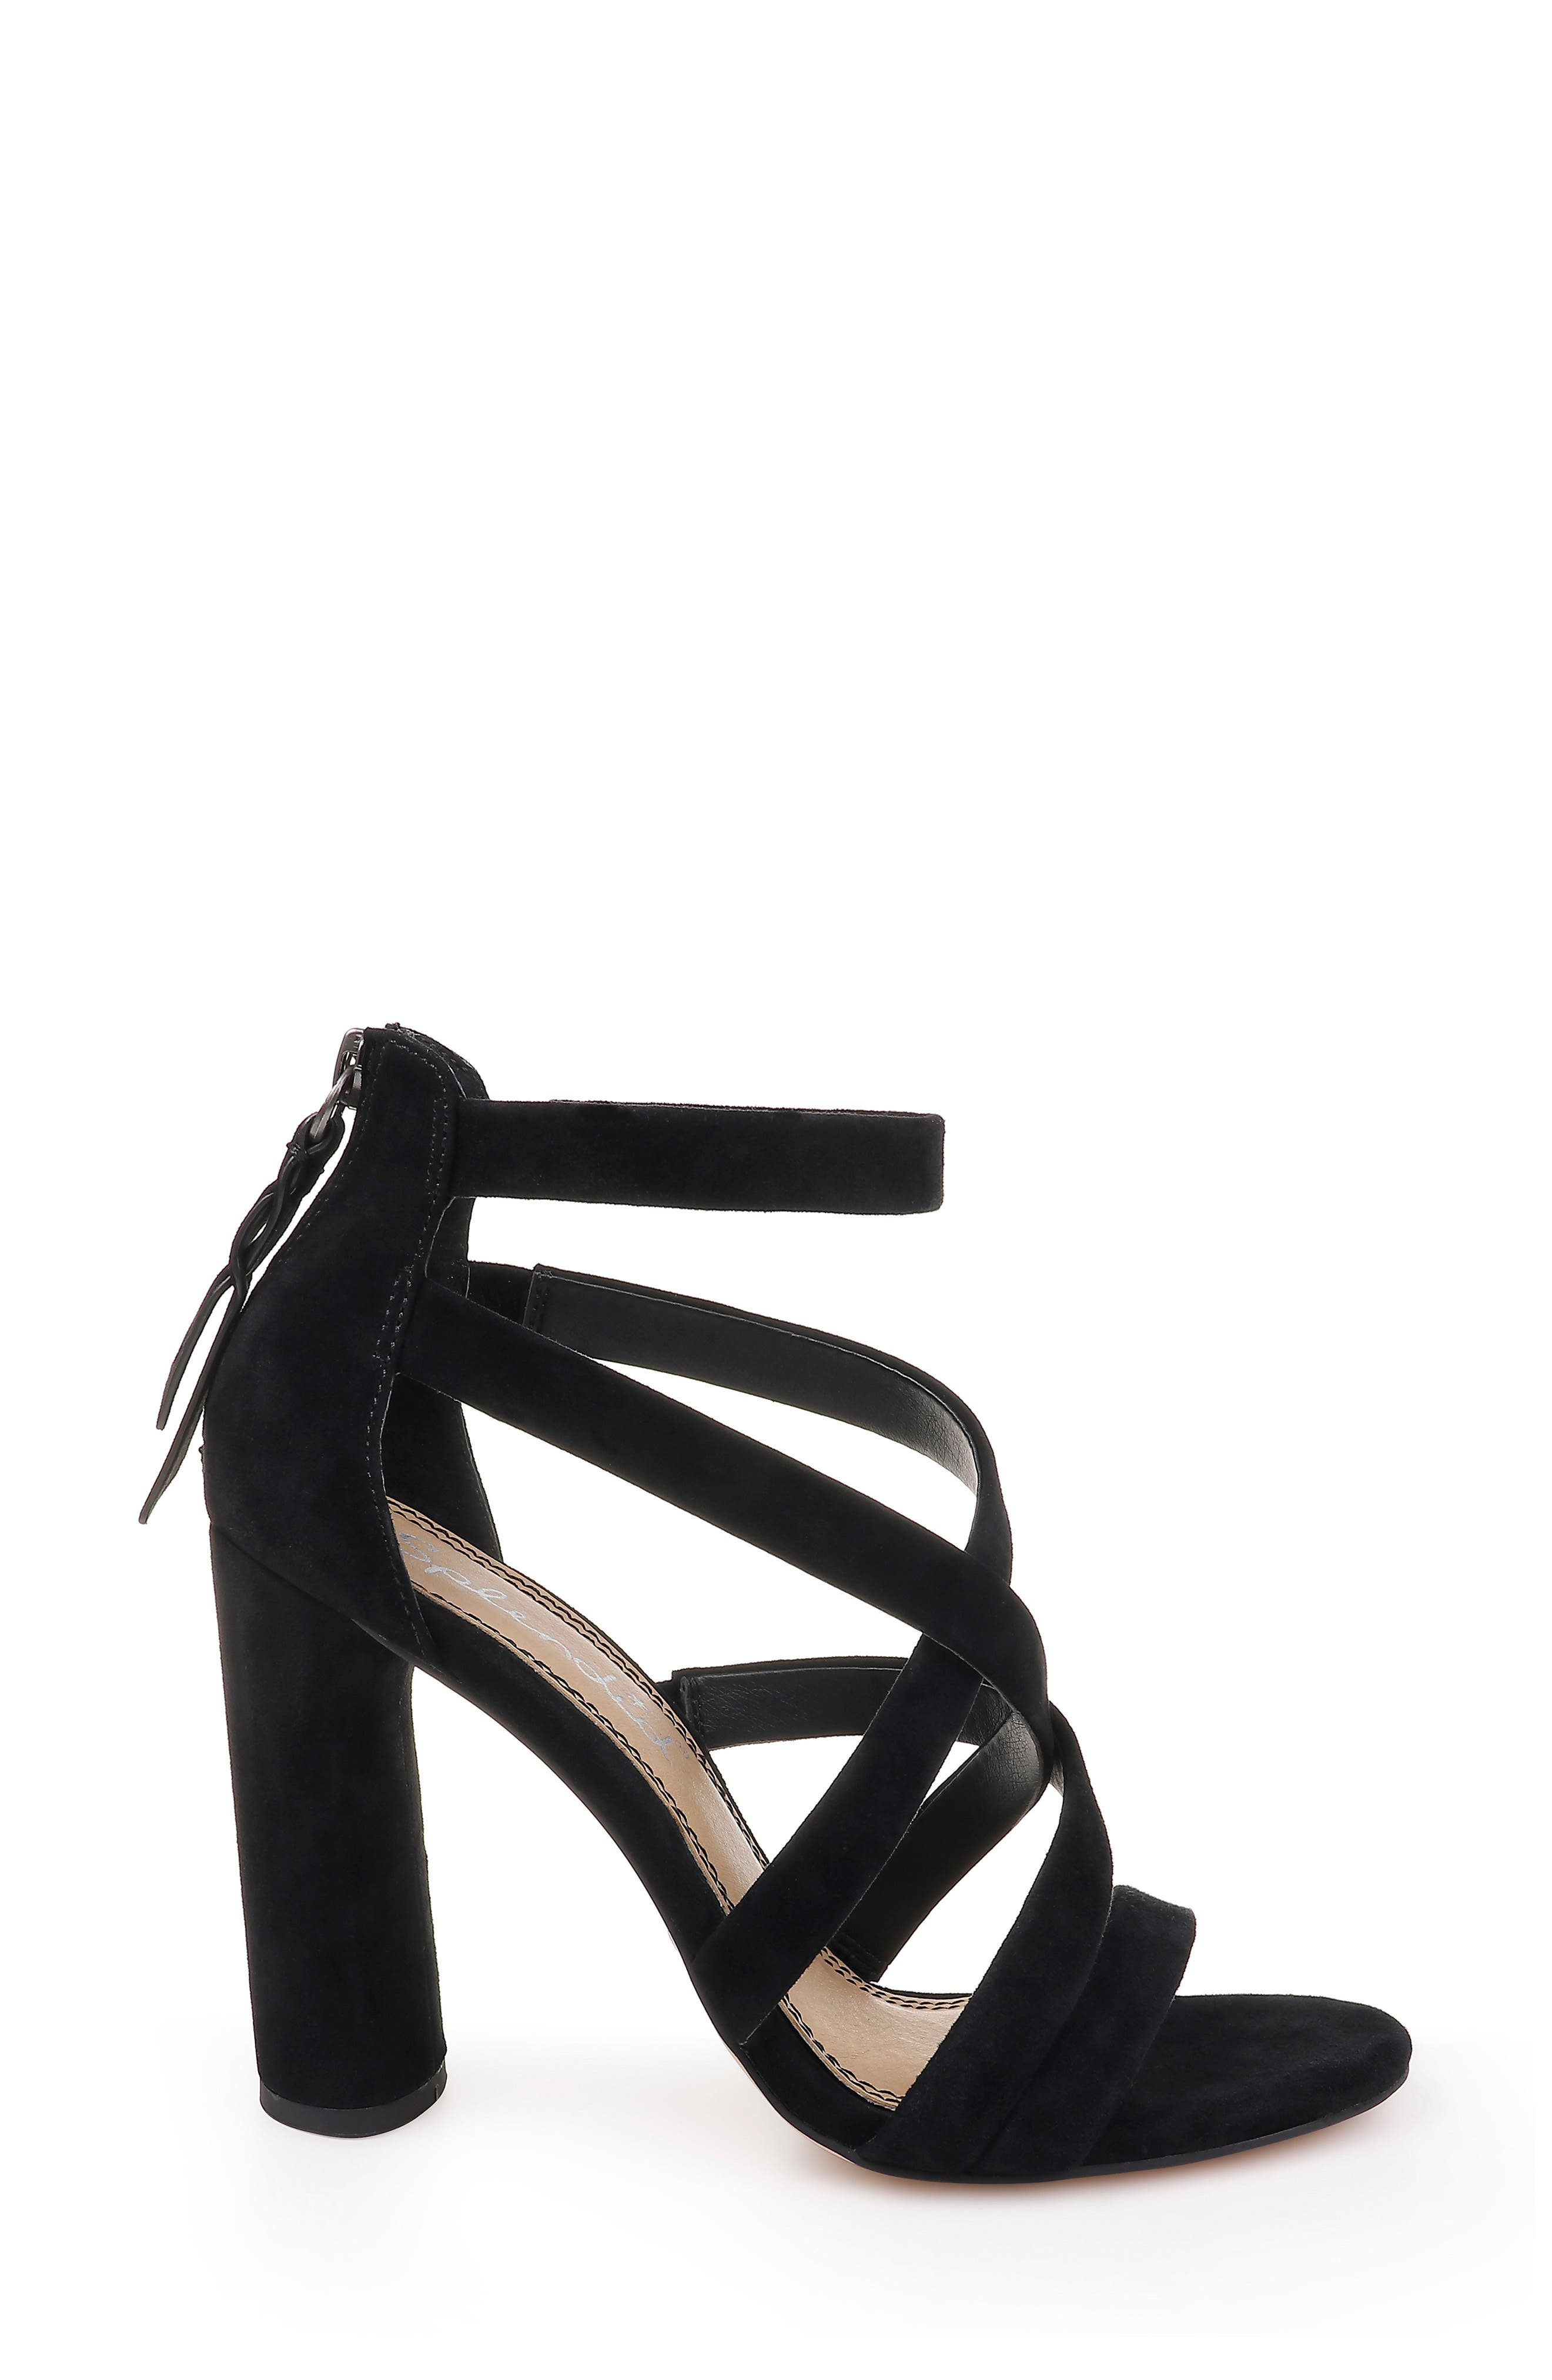 Stuart Block Heel Sandal,                             Alternate thumbnail 3, color,                             BLACK SUEDE